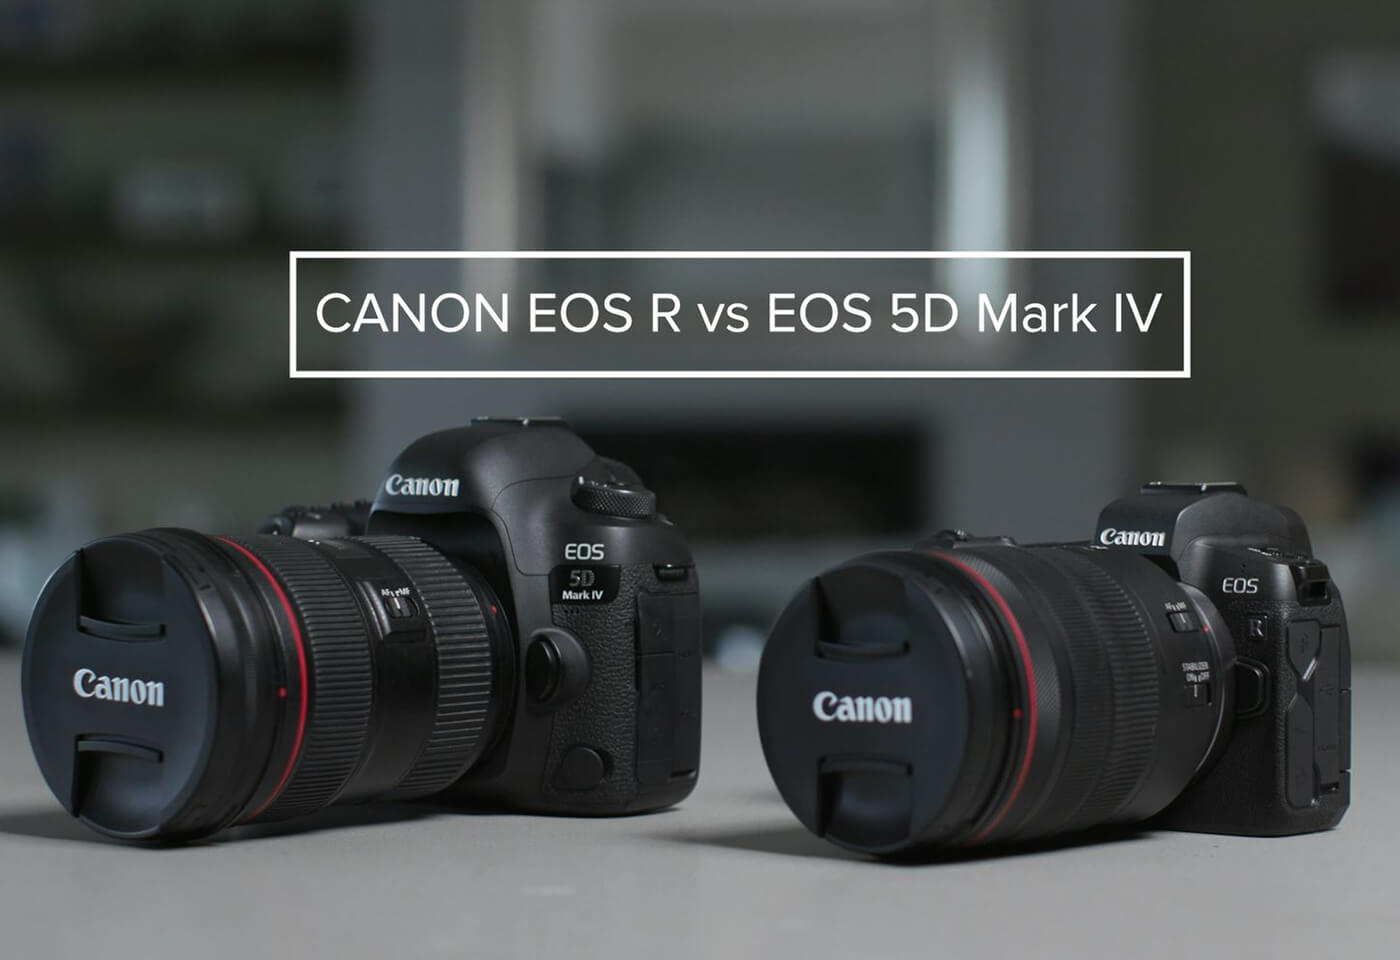 Gemma Peanut pits the EOS R against 5D Mark IV